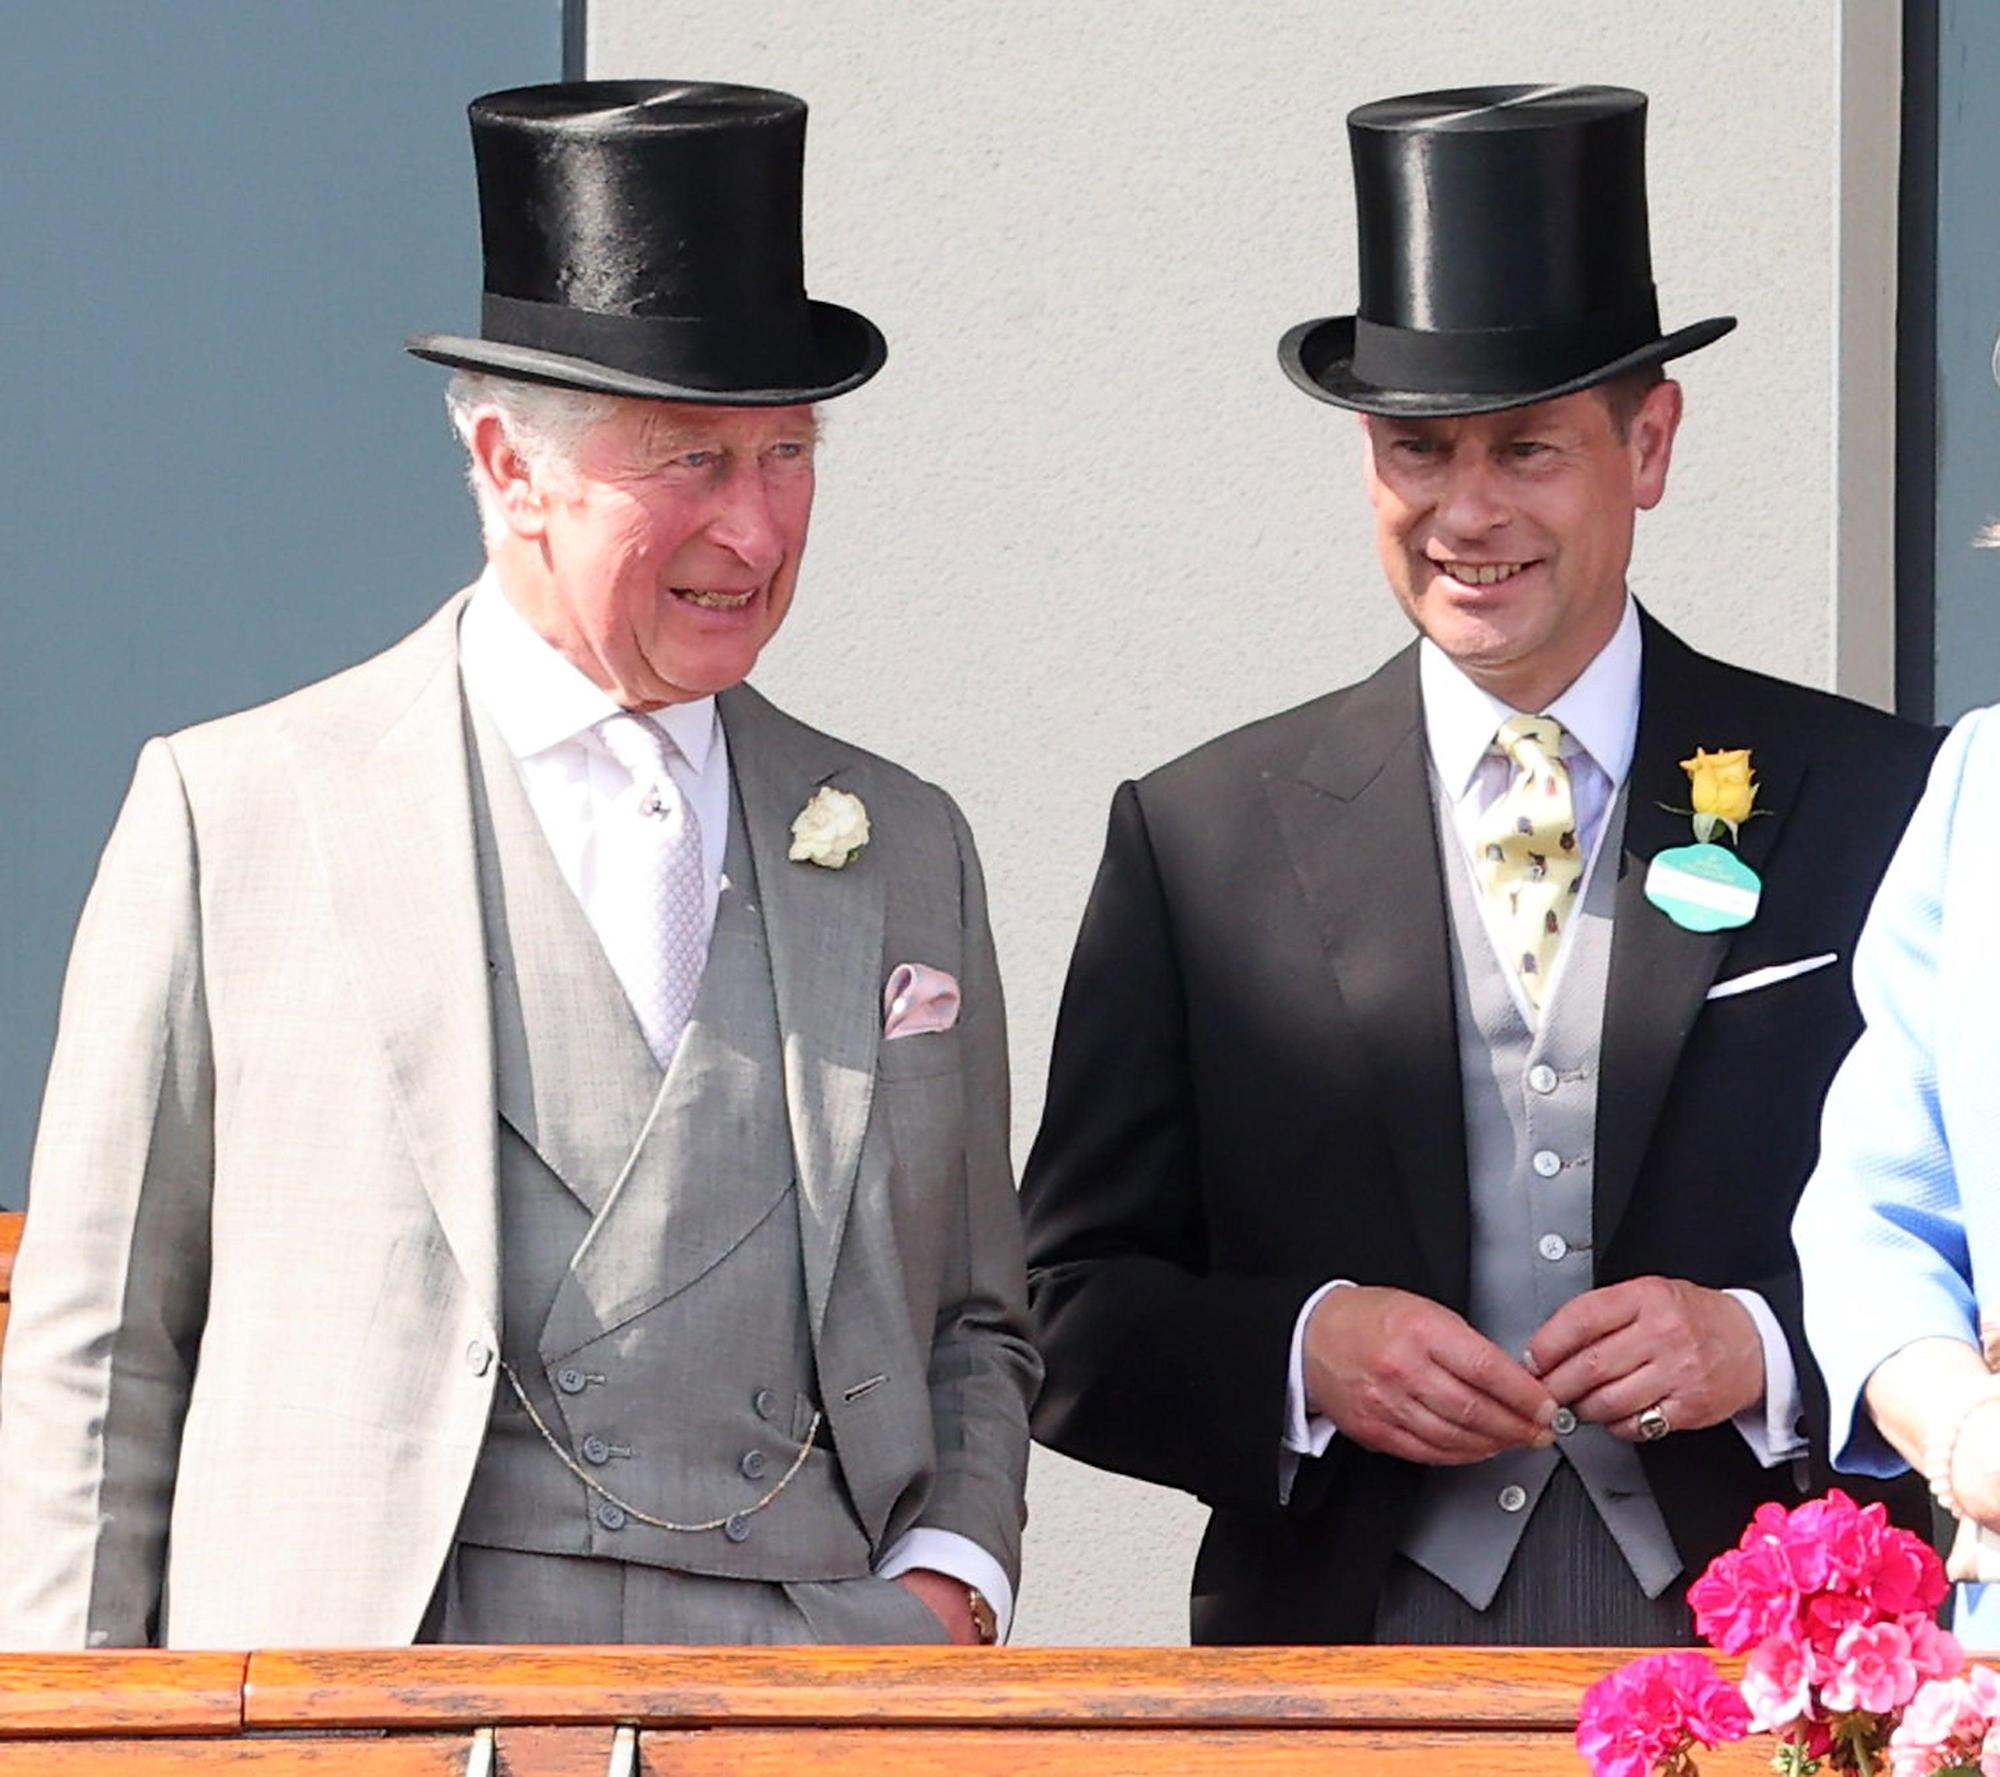 Prince Charles 'will make Prince Edward next Duke of Edinburgh', according to Queen's former aide